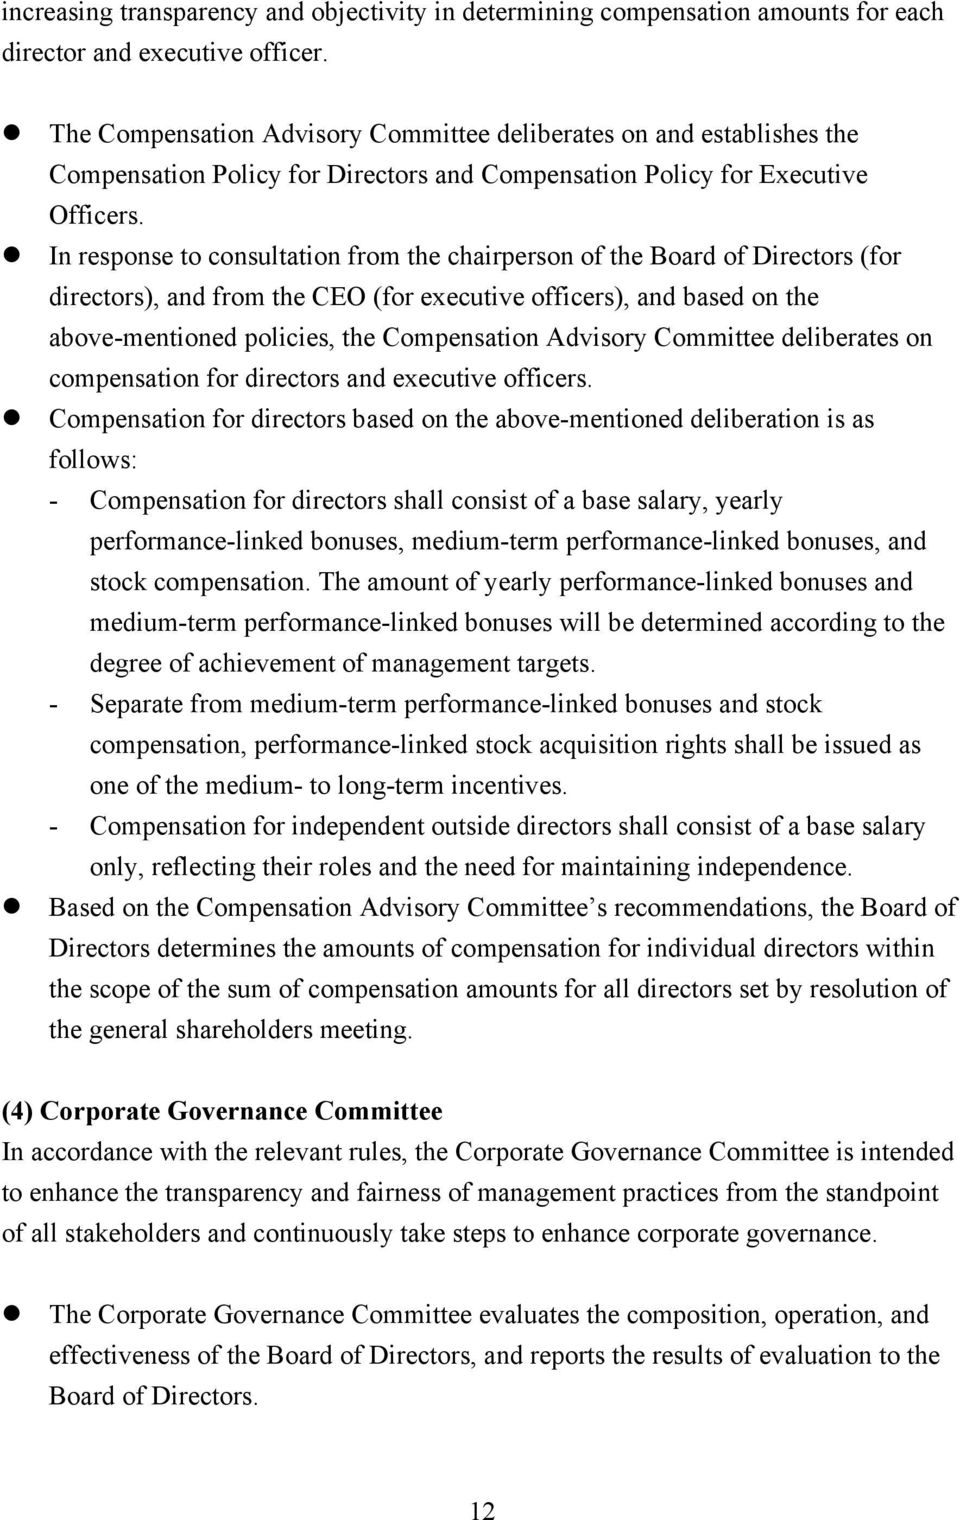 In response to consultation from the chairperson of the Board of Directors (for directors), and from the CEO (for executive officers), and based on the above-mentioned policies, the Compensation